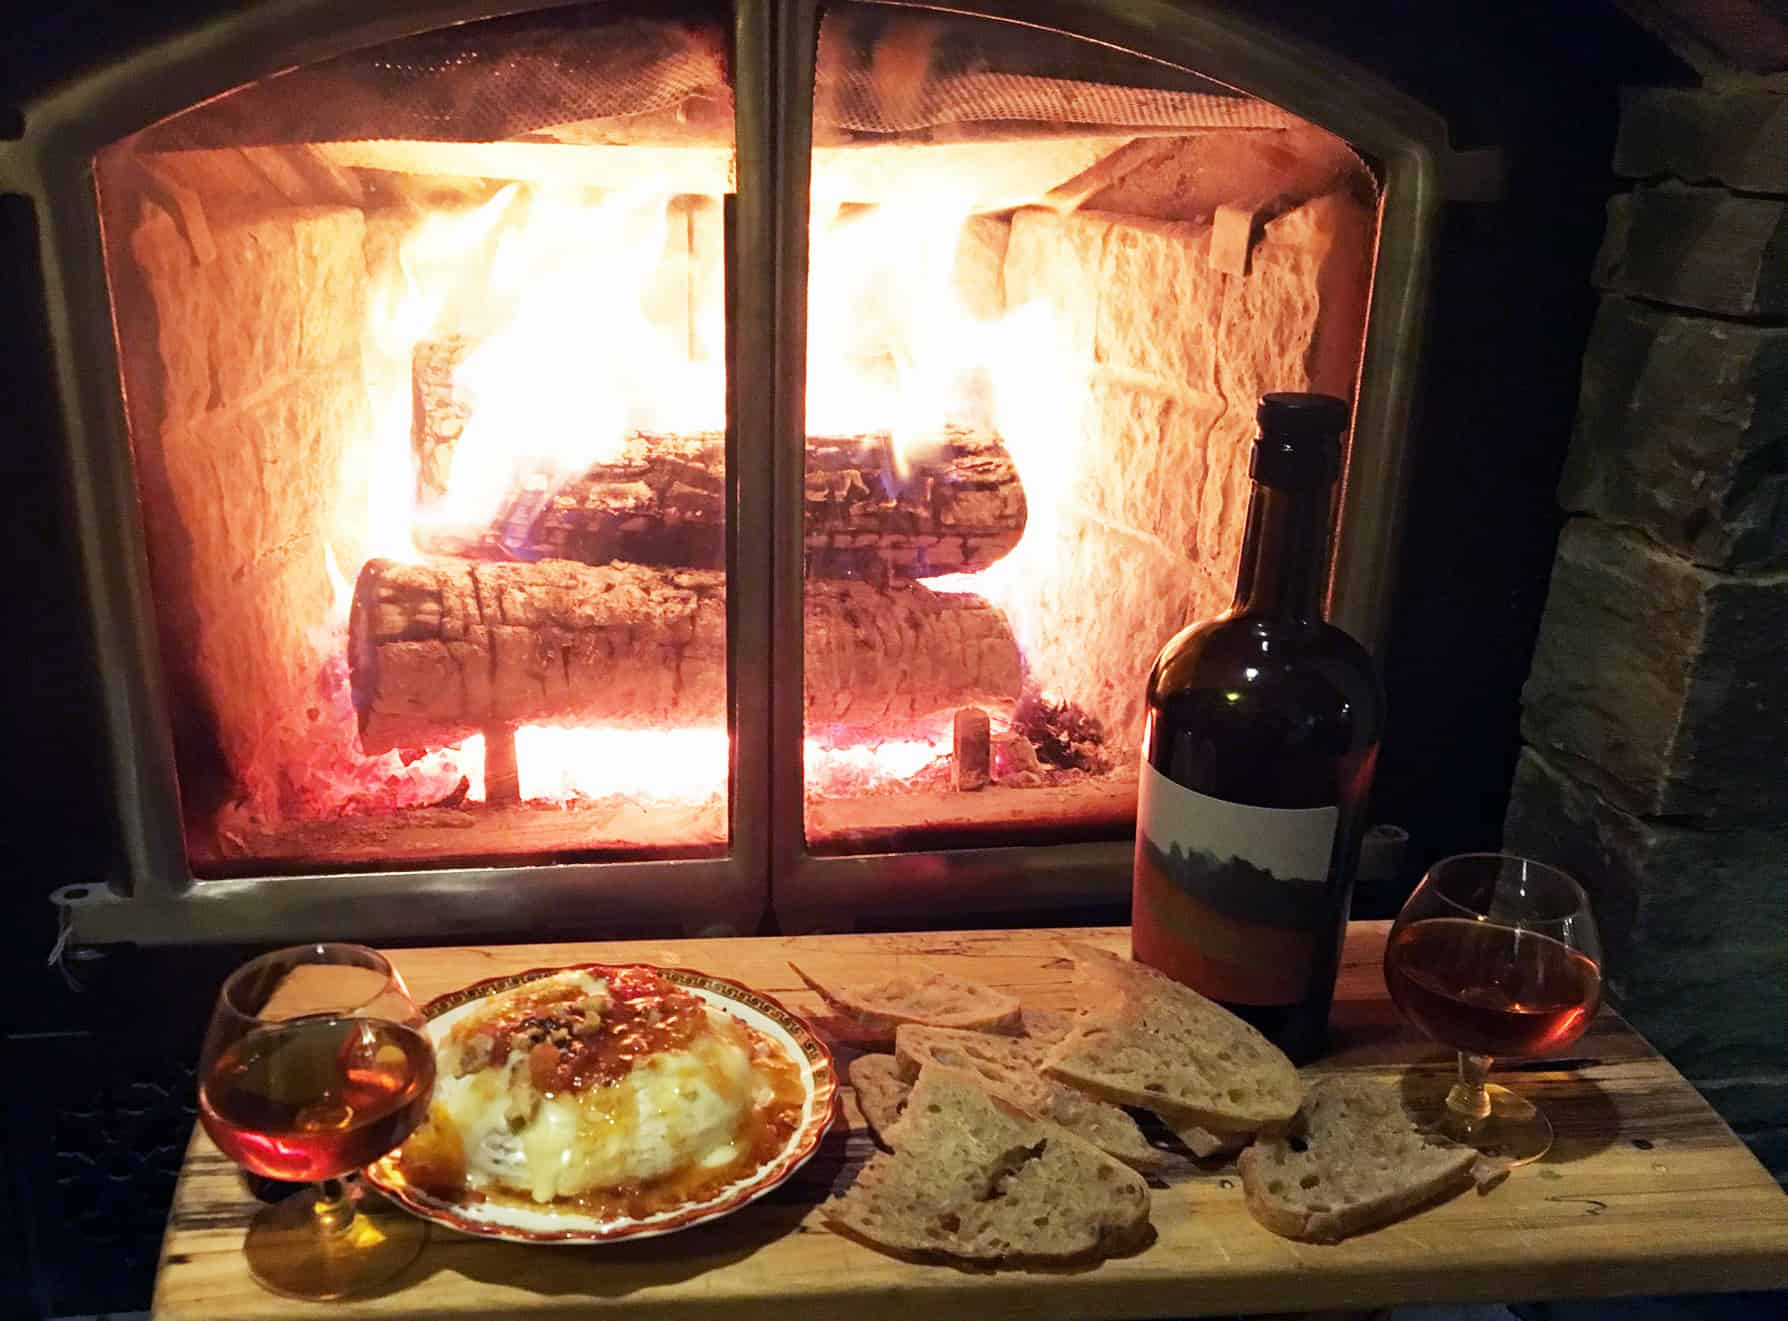 Baked Brie and Pommeau by the Fire